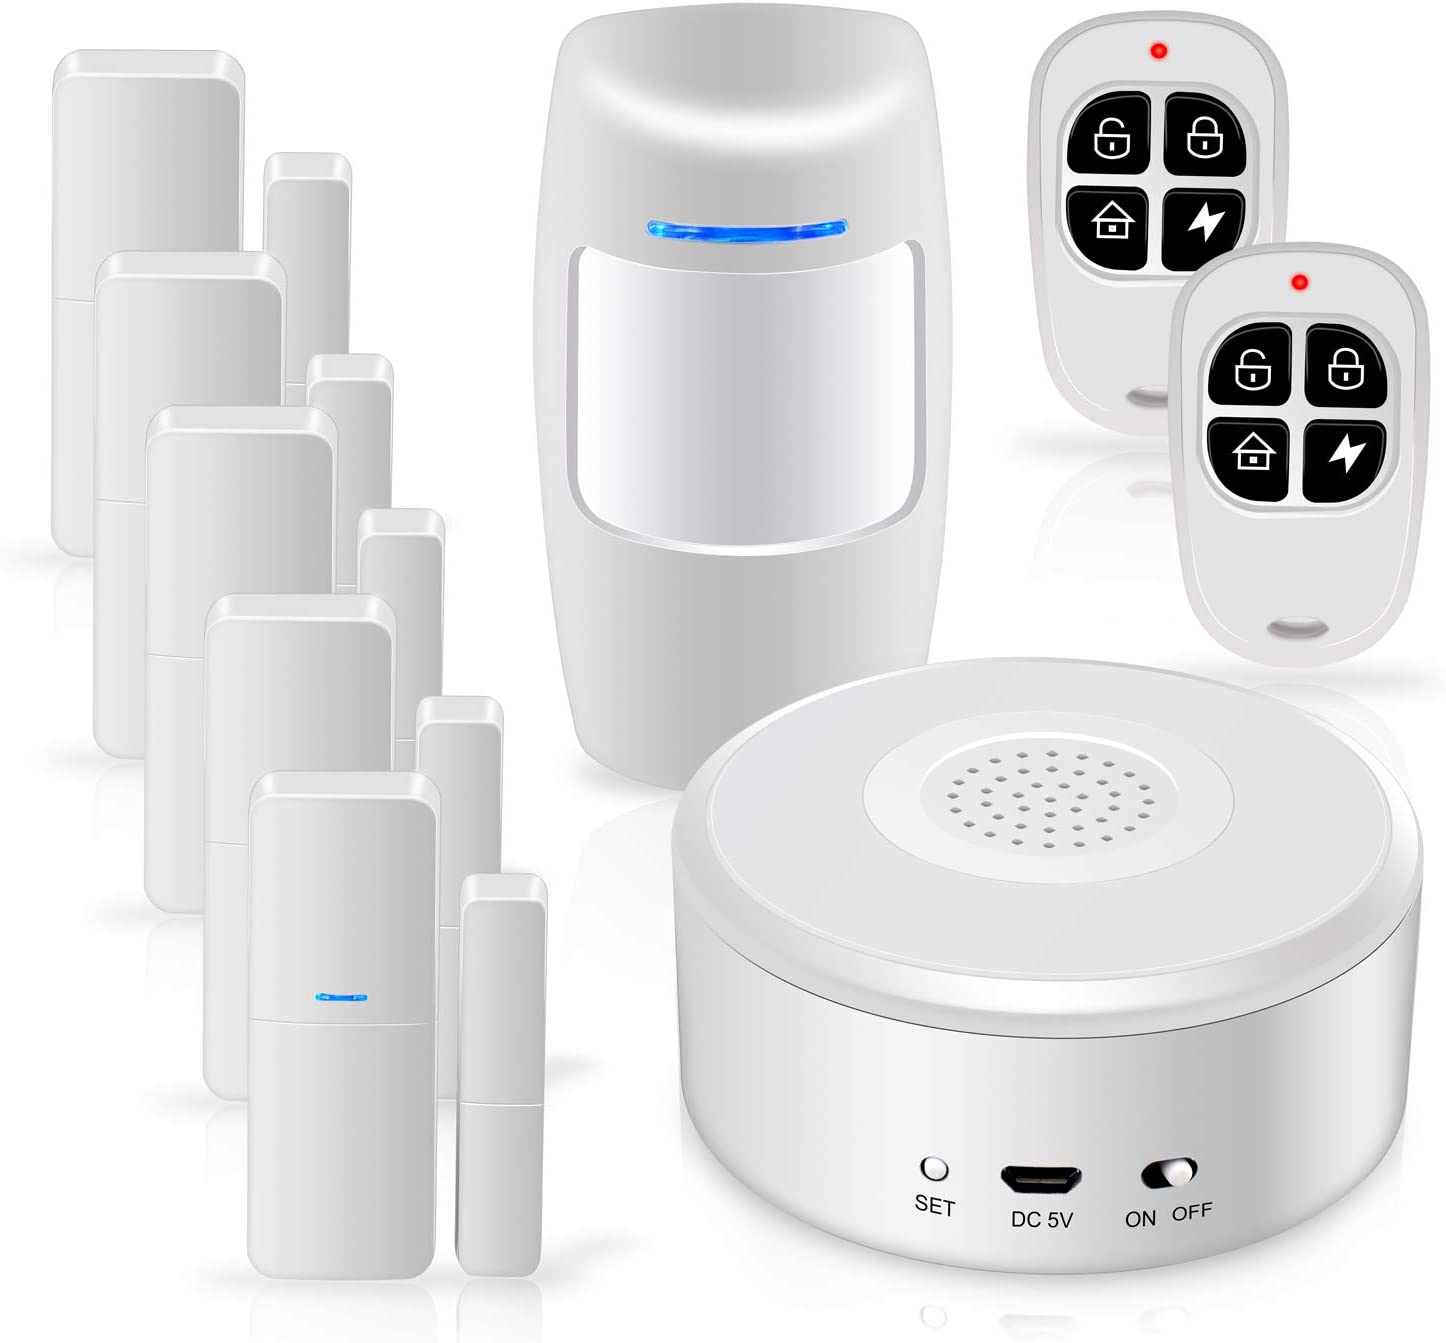 Zegoal WiFi Security System